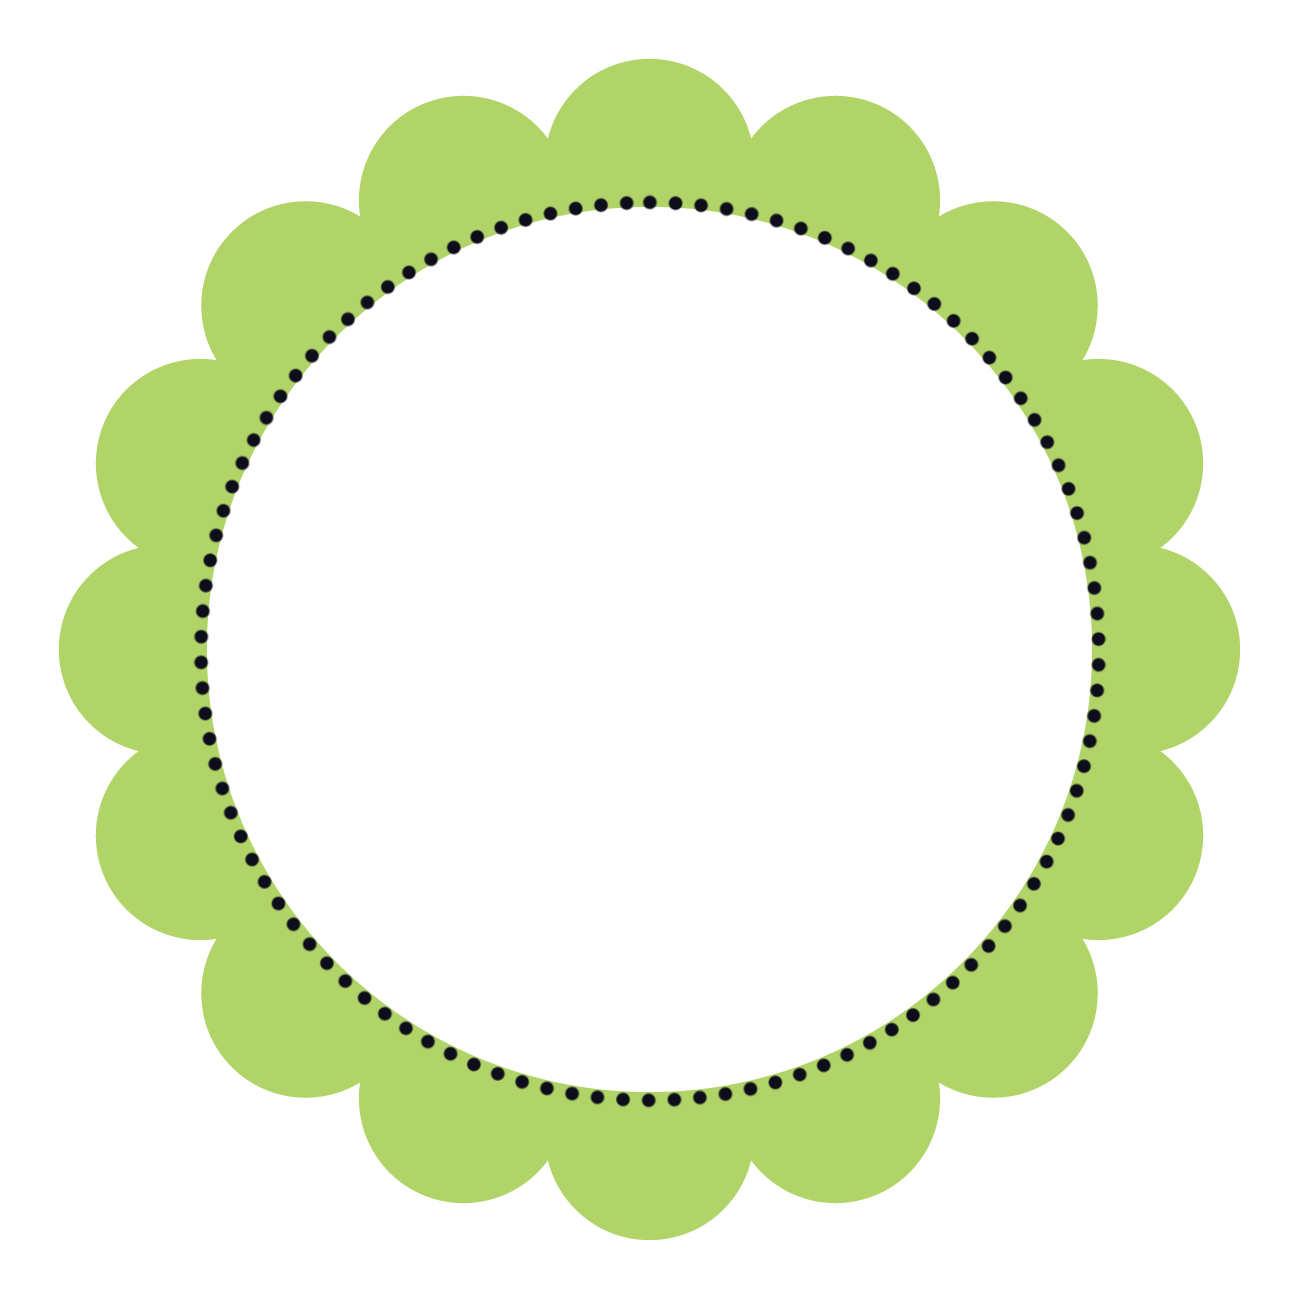 Chevron circle clipart picture free download Circle Frame Clip Art | Clipart Panda - Free Clipart Images picture free download